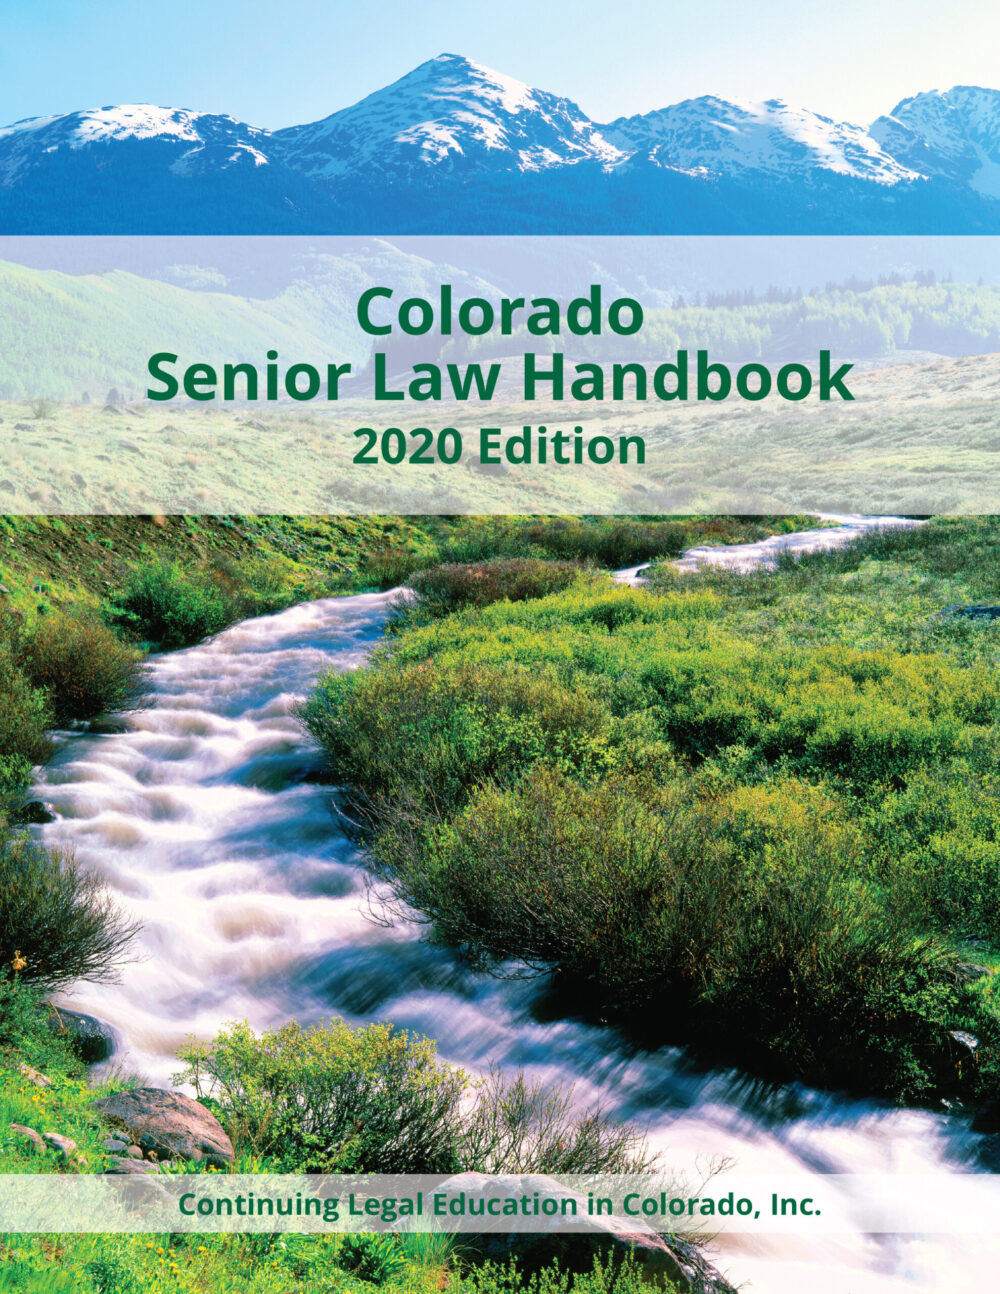 Colorado Senior Law Handbook